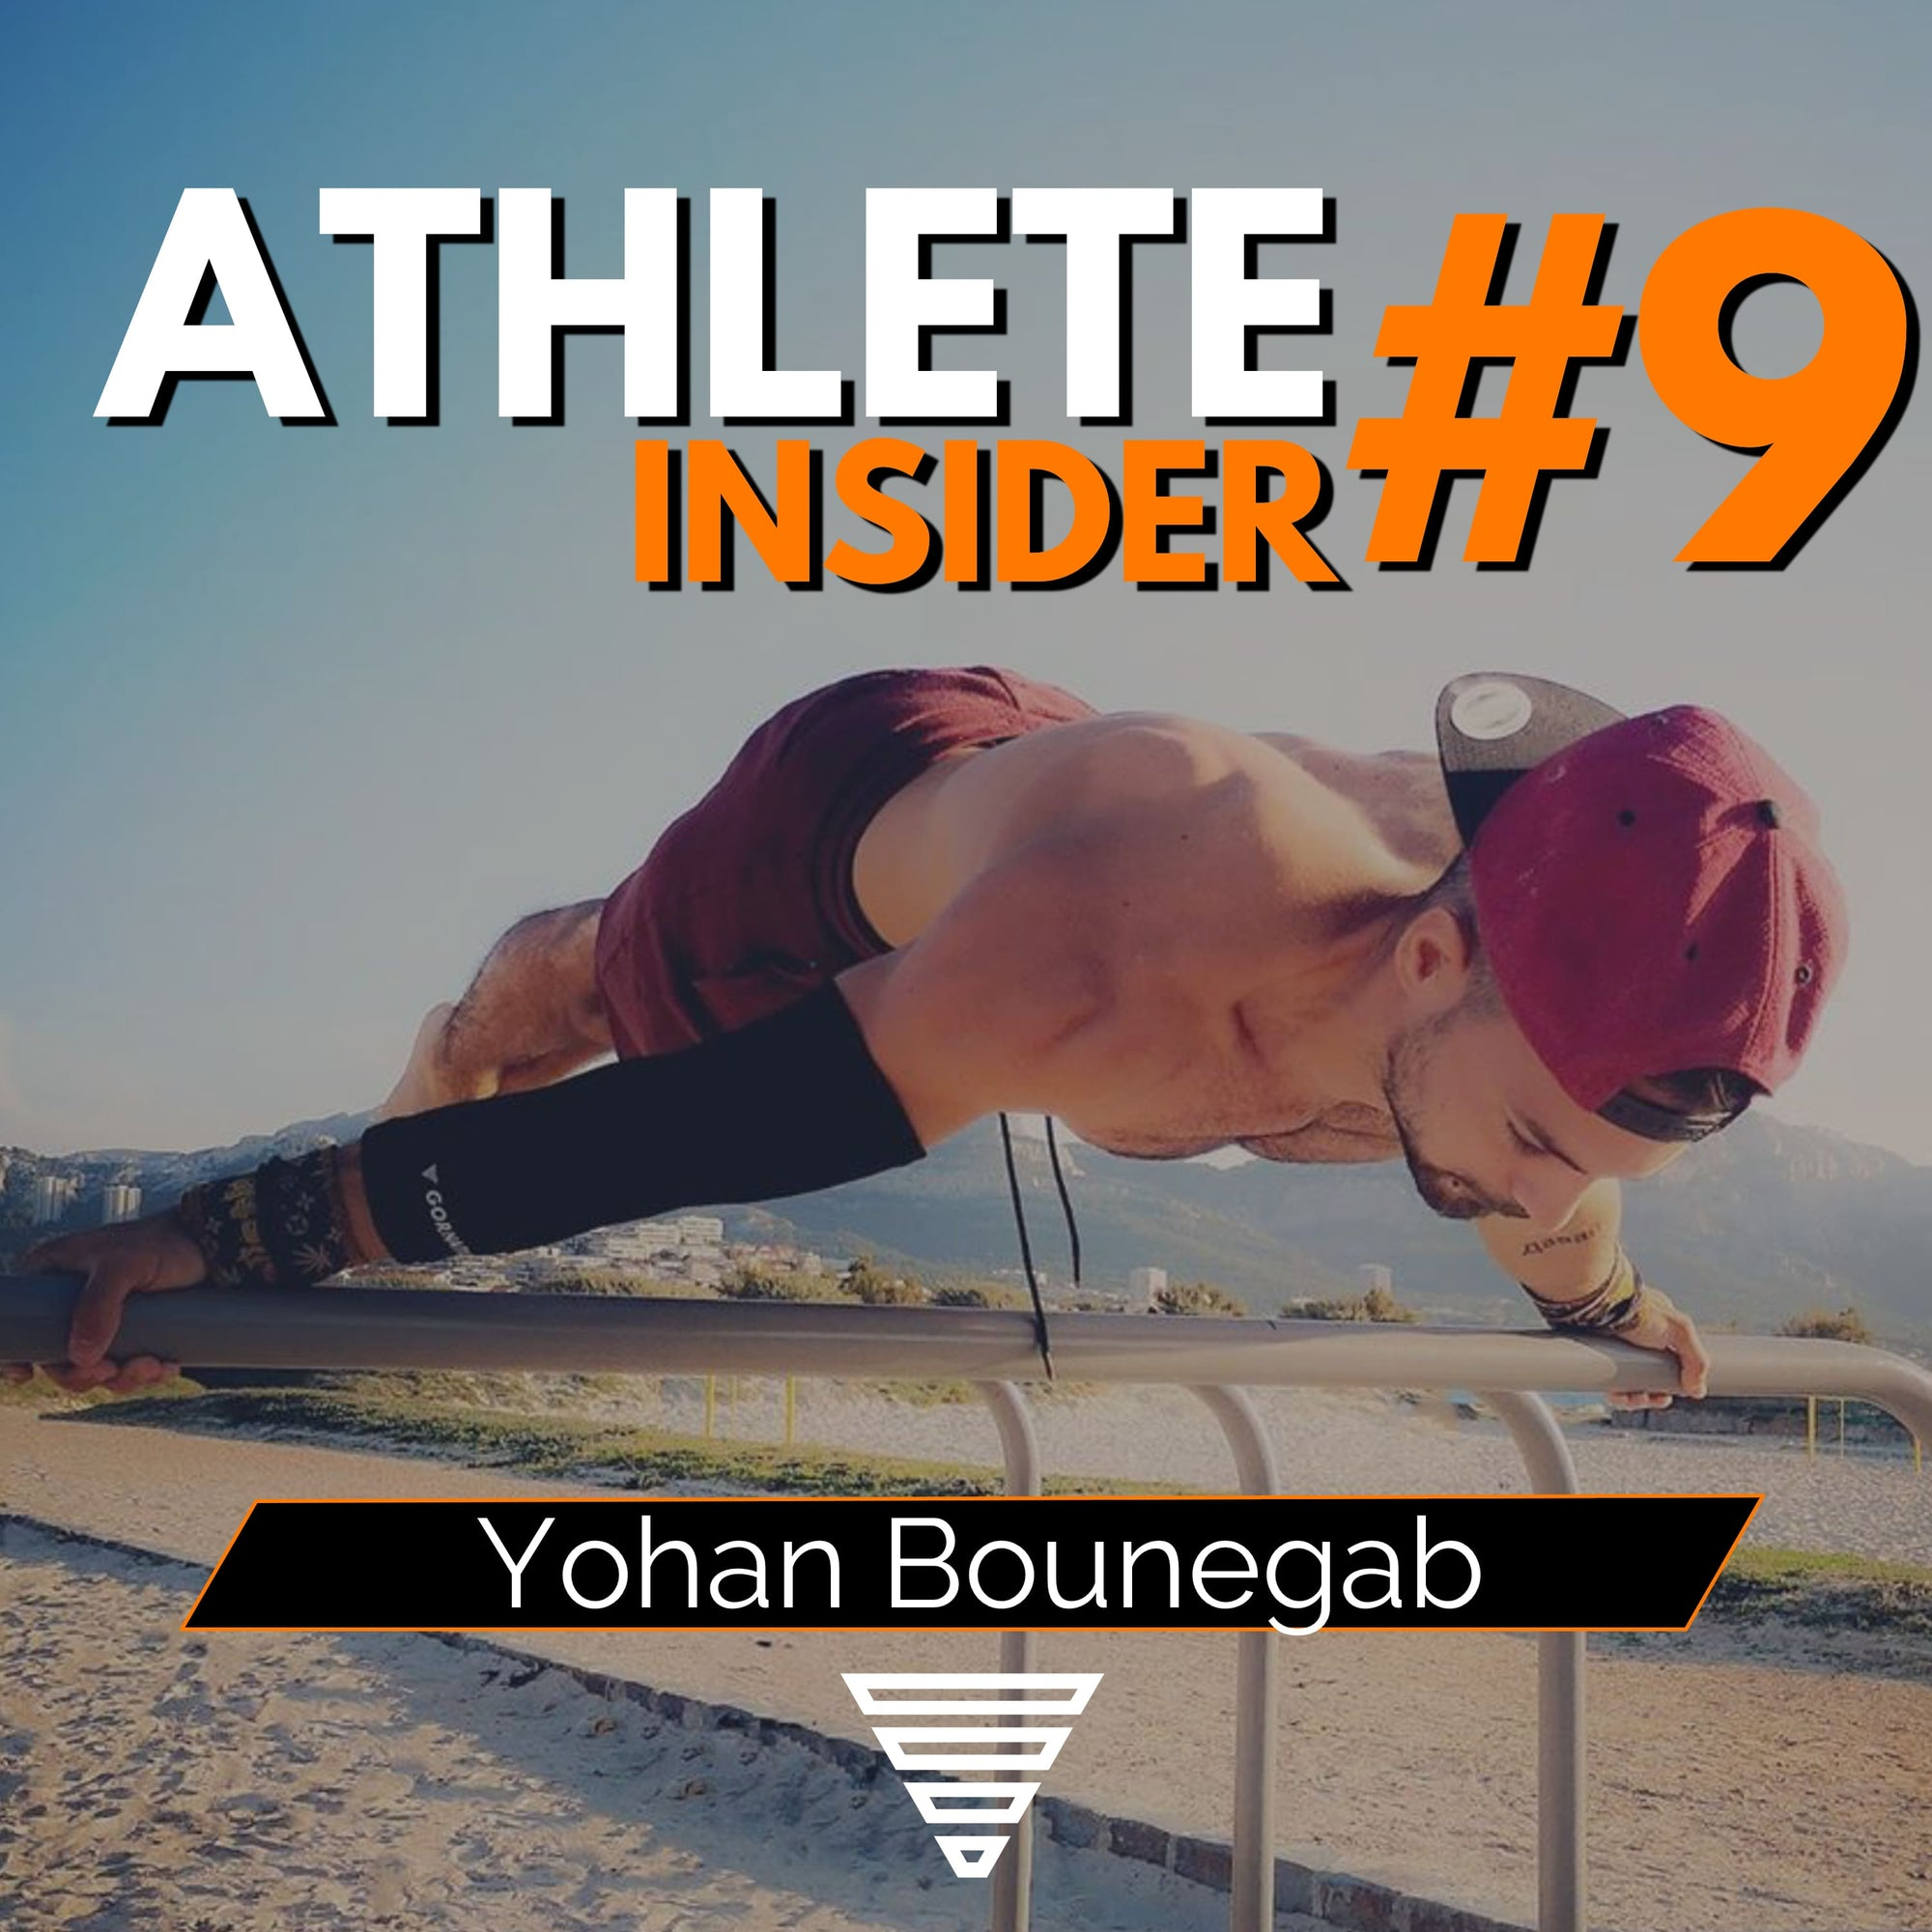 SAN YOHAN | Meet the World Champion 2018 | The Athlete Insider Podcast #9